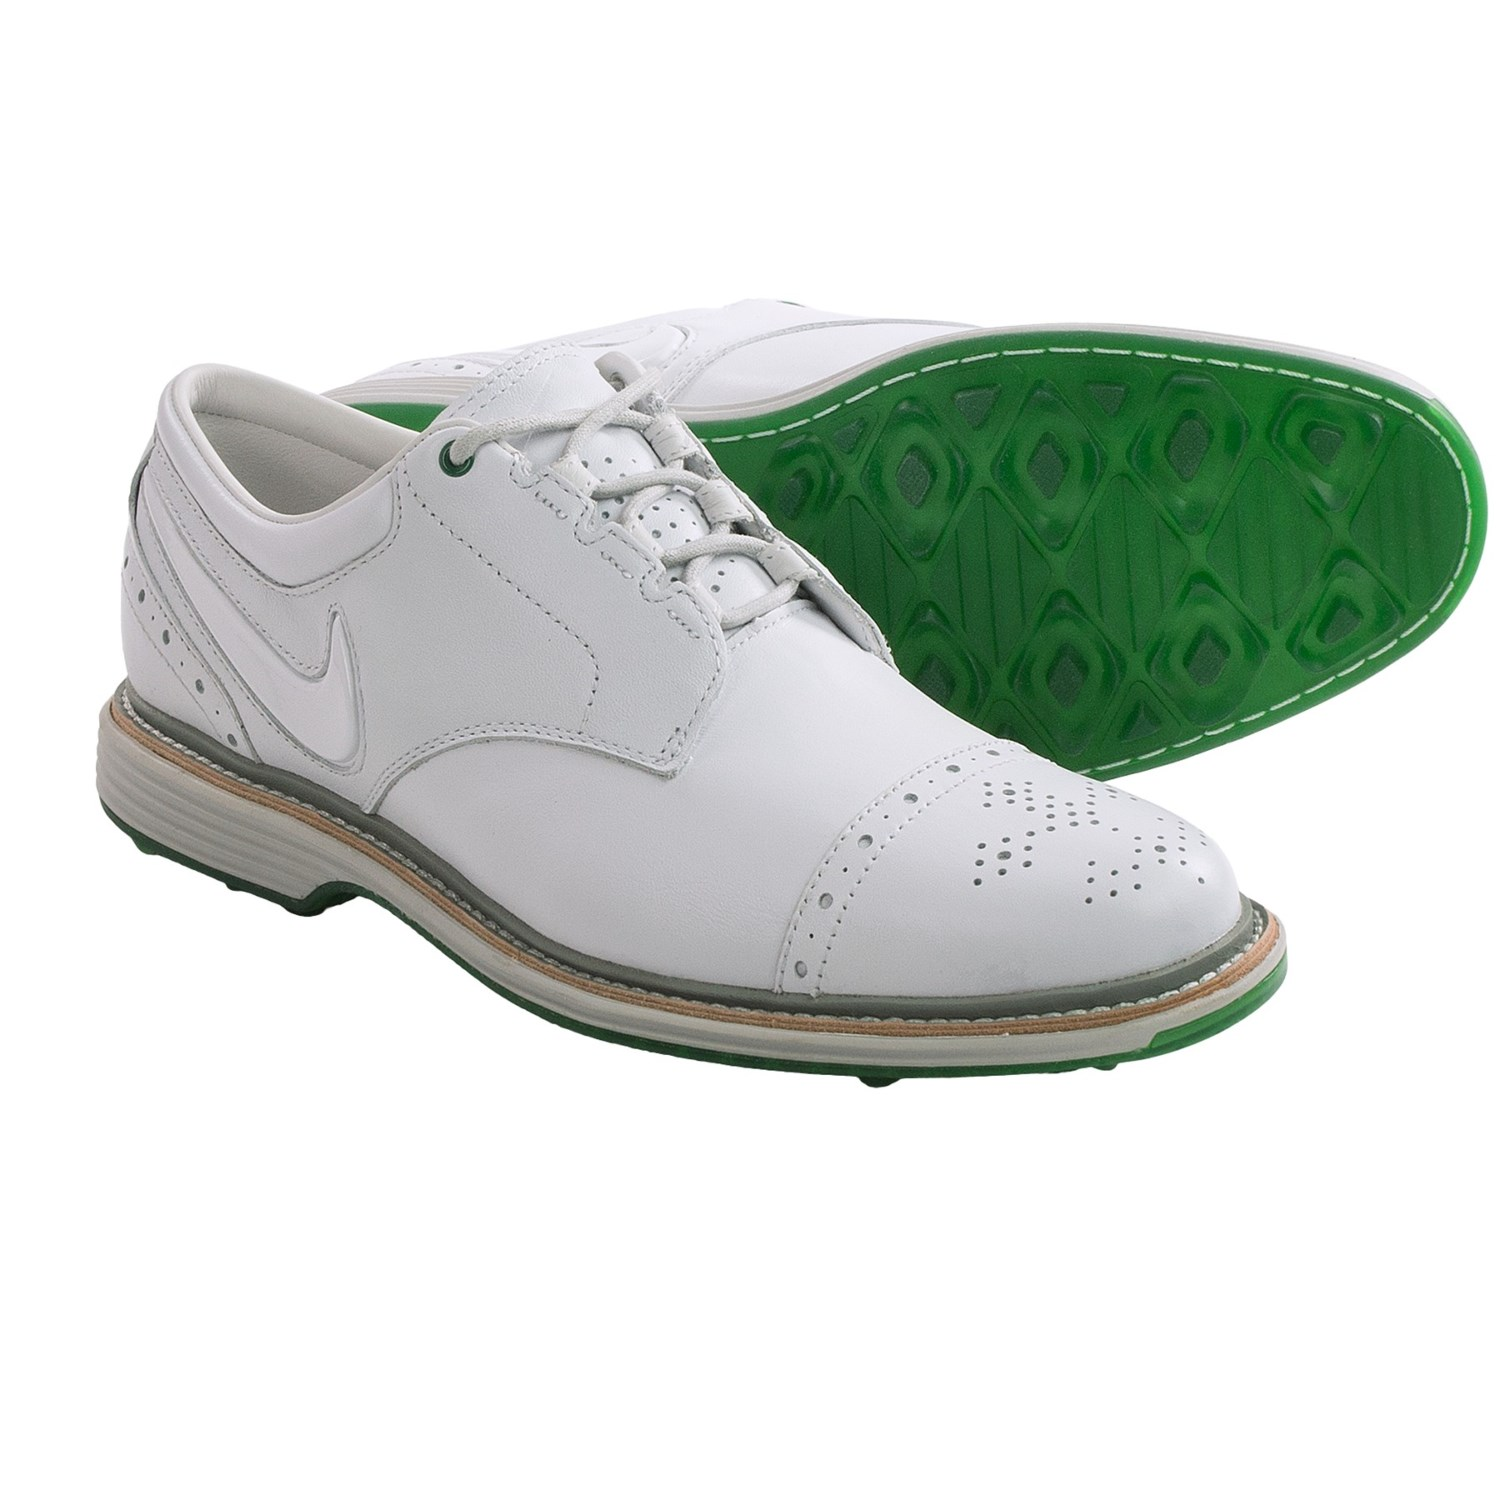 Green Golf Shoes